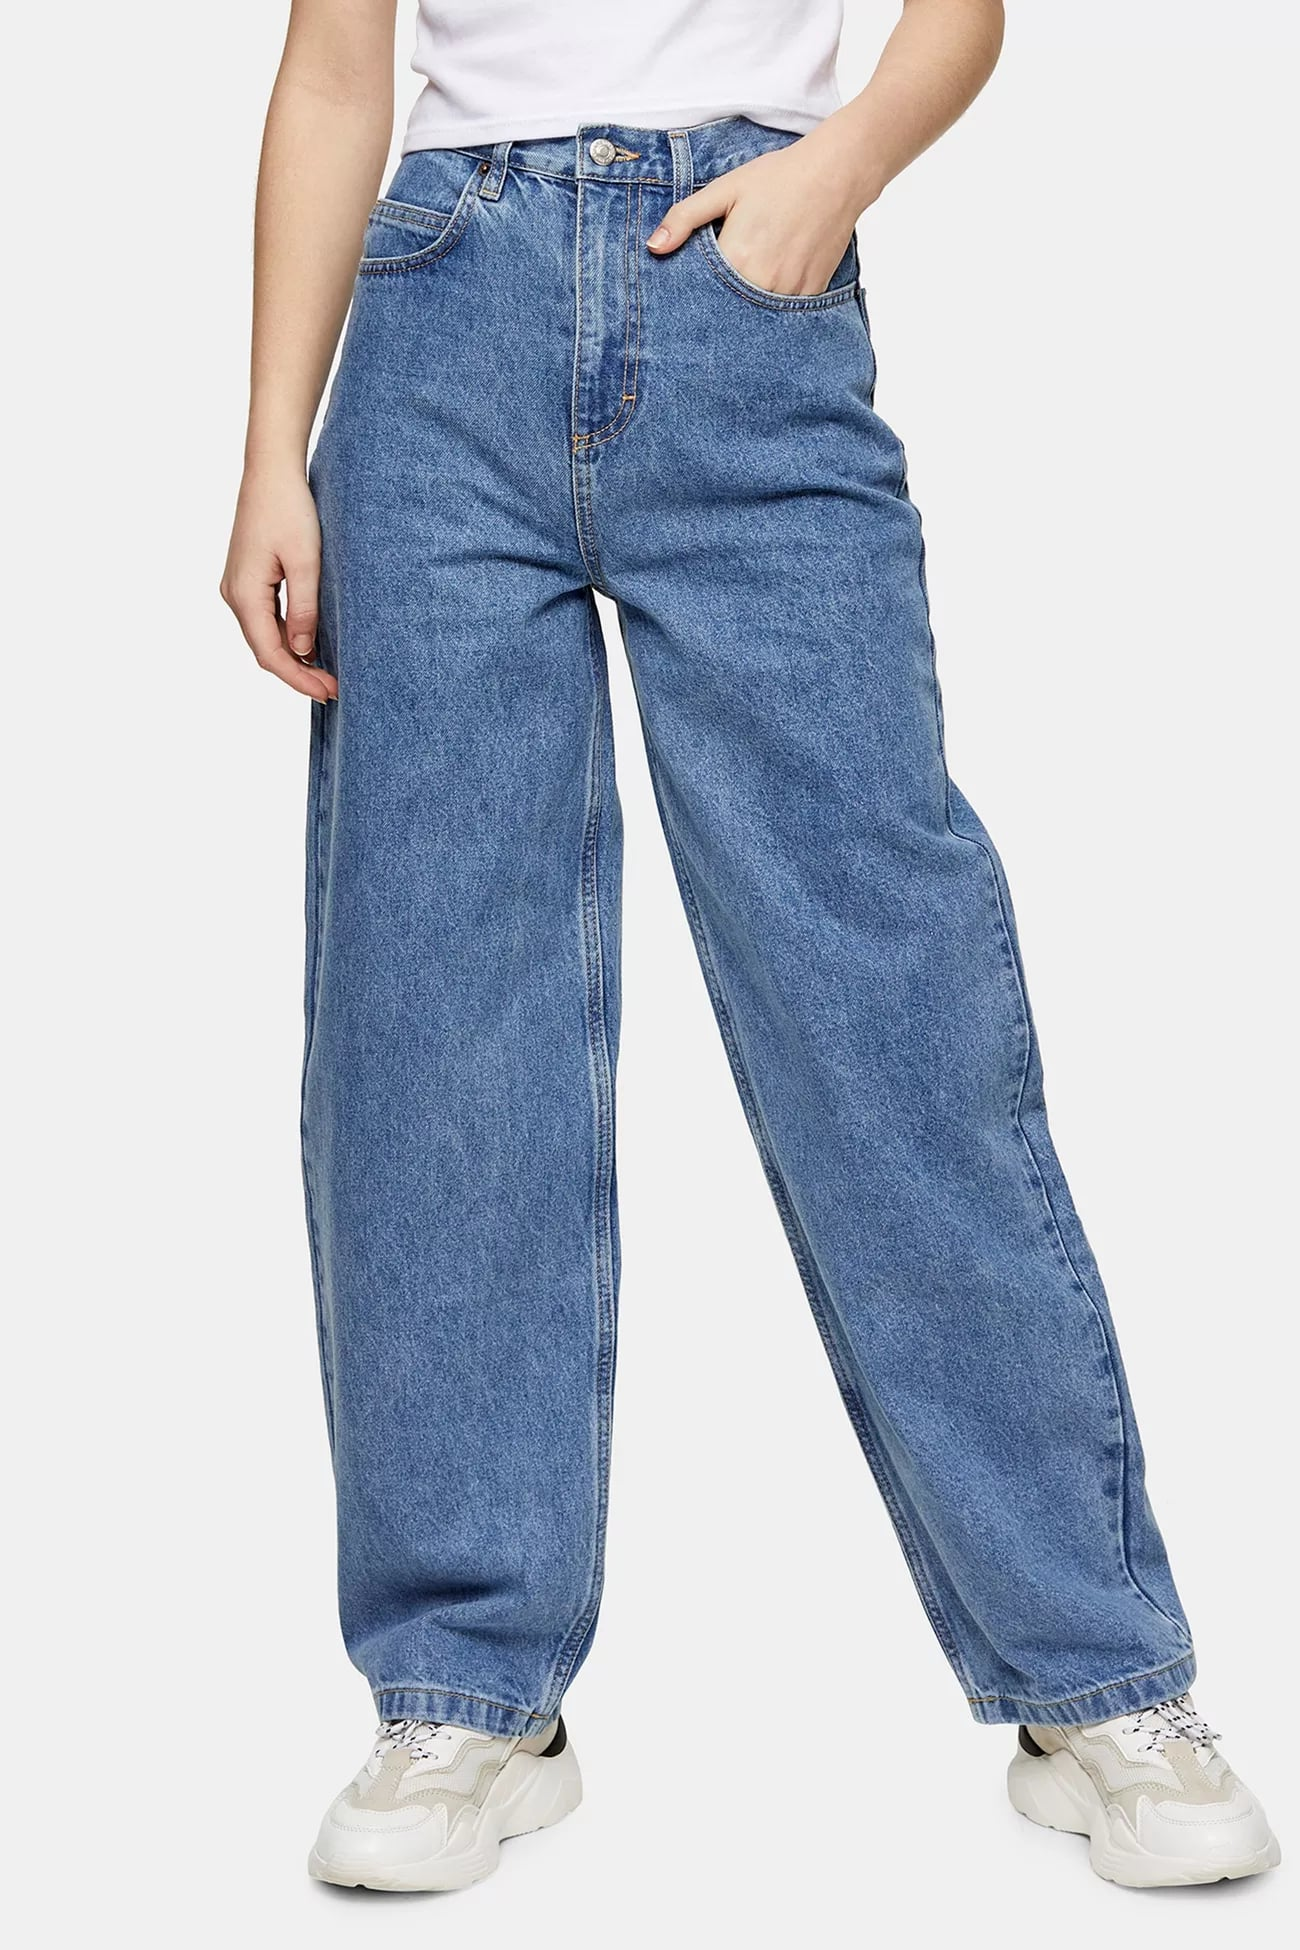 How To Wear Baggy Jeans Popsugar Fashion Cheap trendy tumblr aesthetic clothing, grunge style, cute outfits. how to wear baggy jeans popsugar fashion